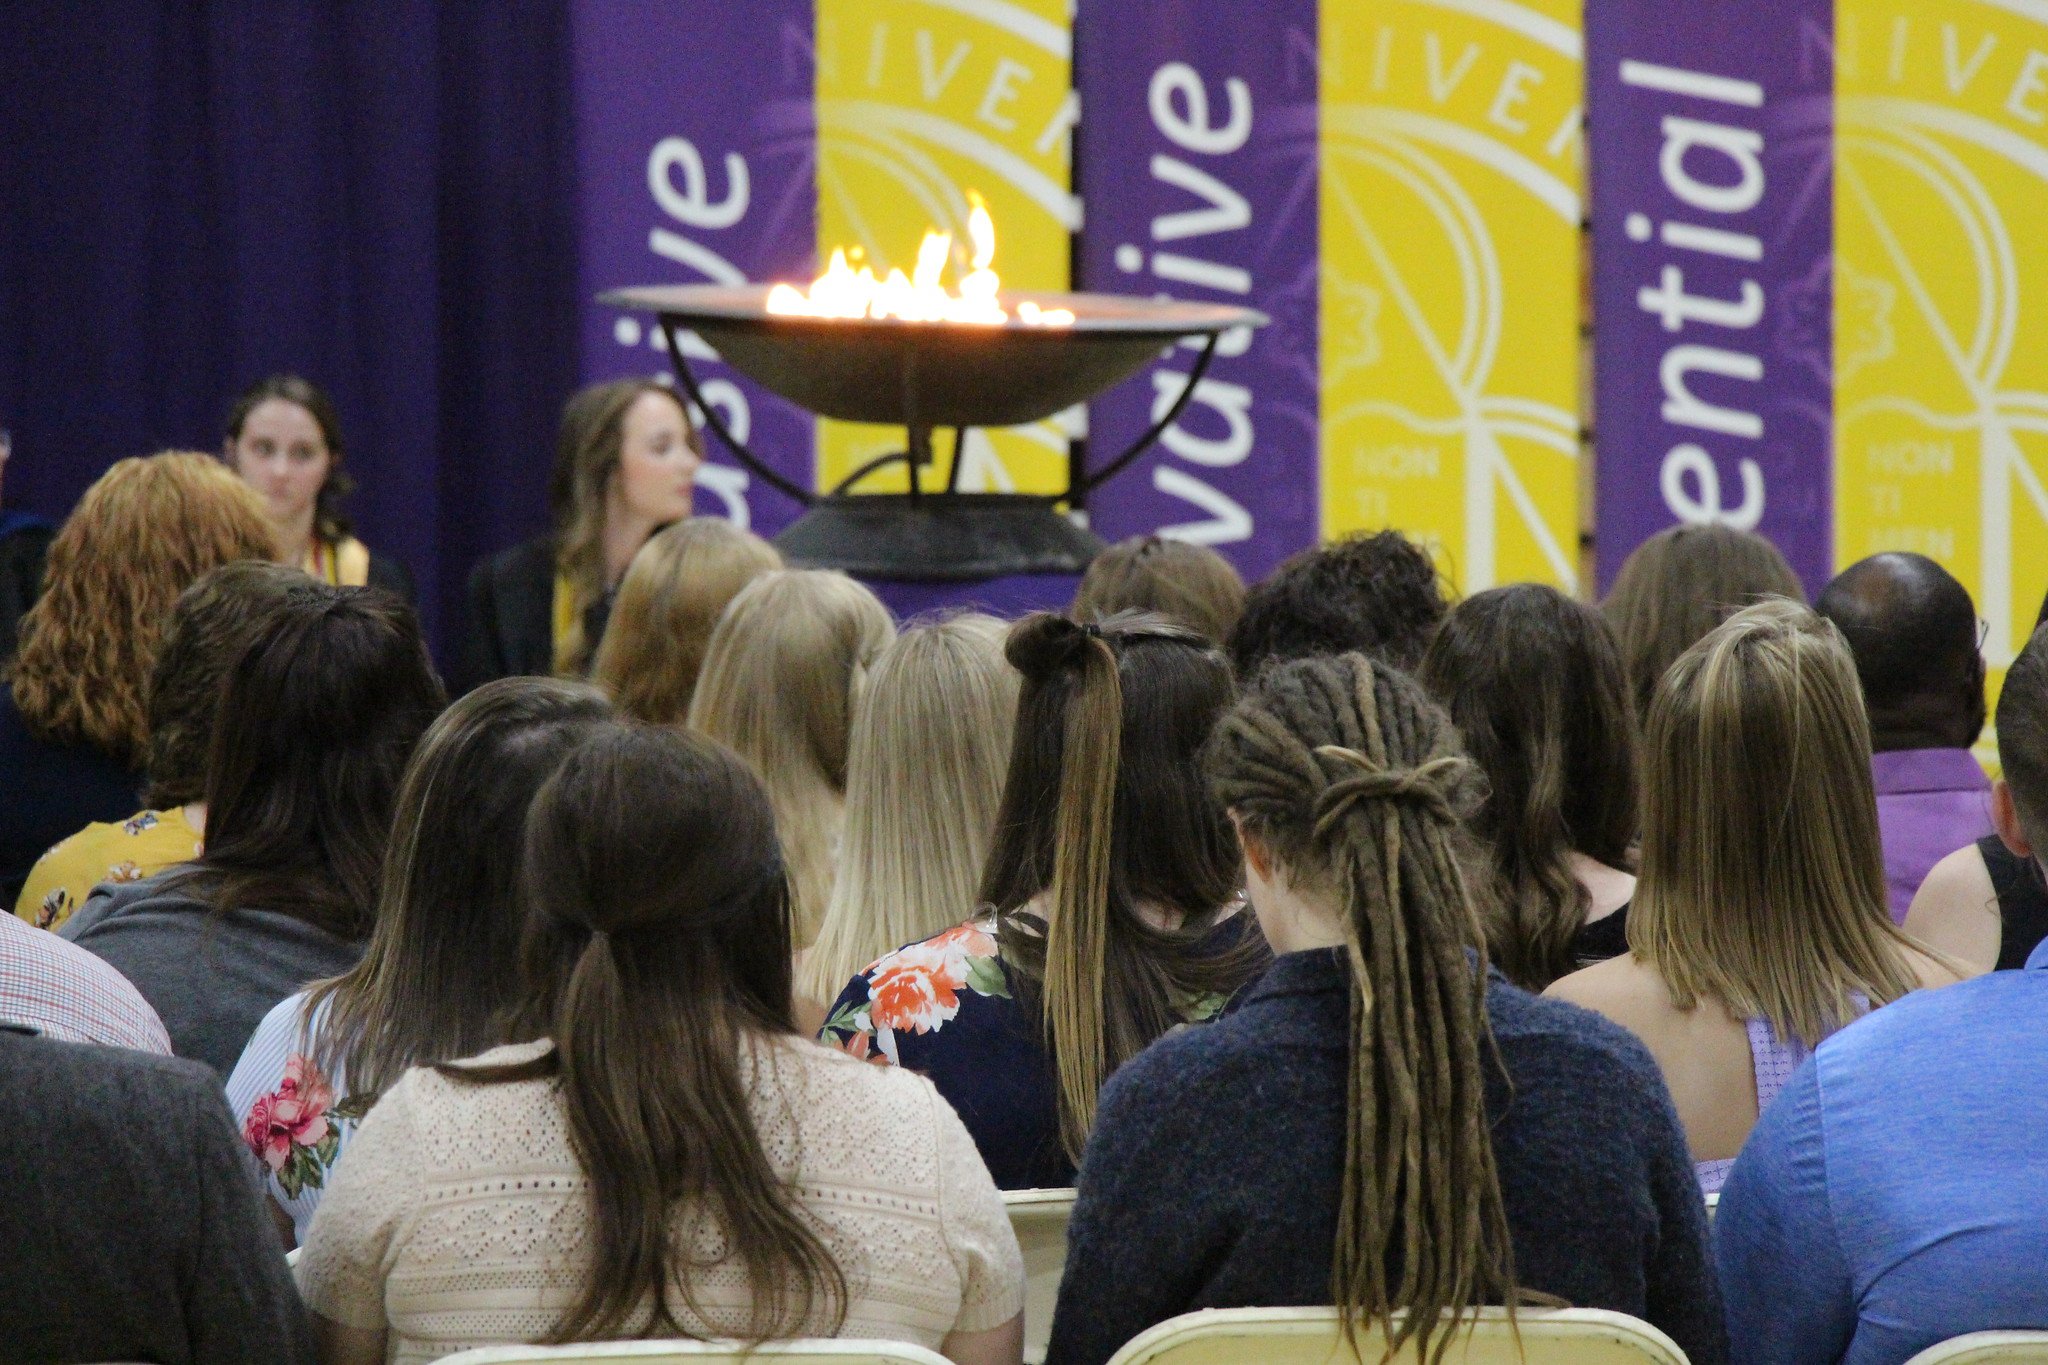 Image of students in audience with Avila flame in the background